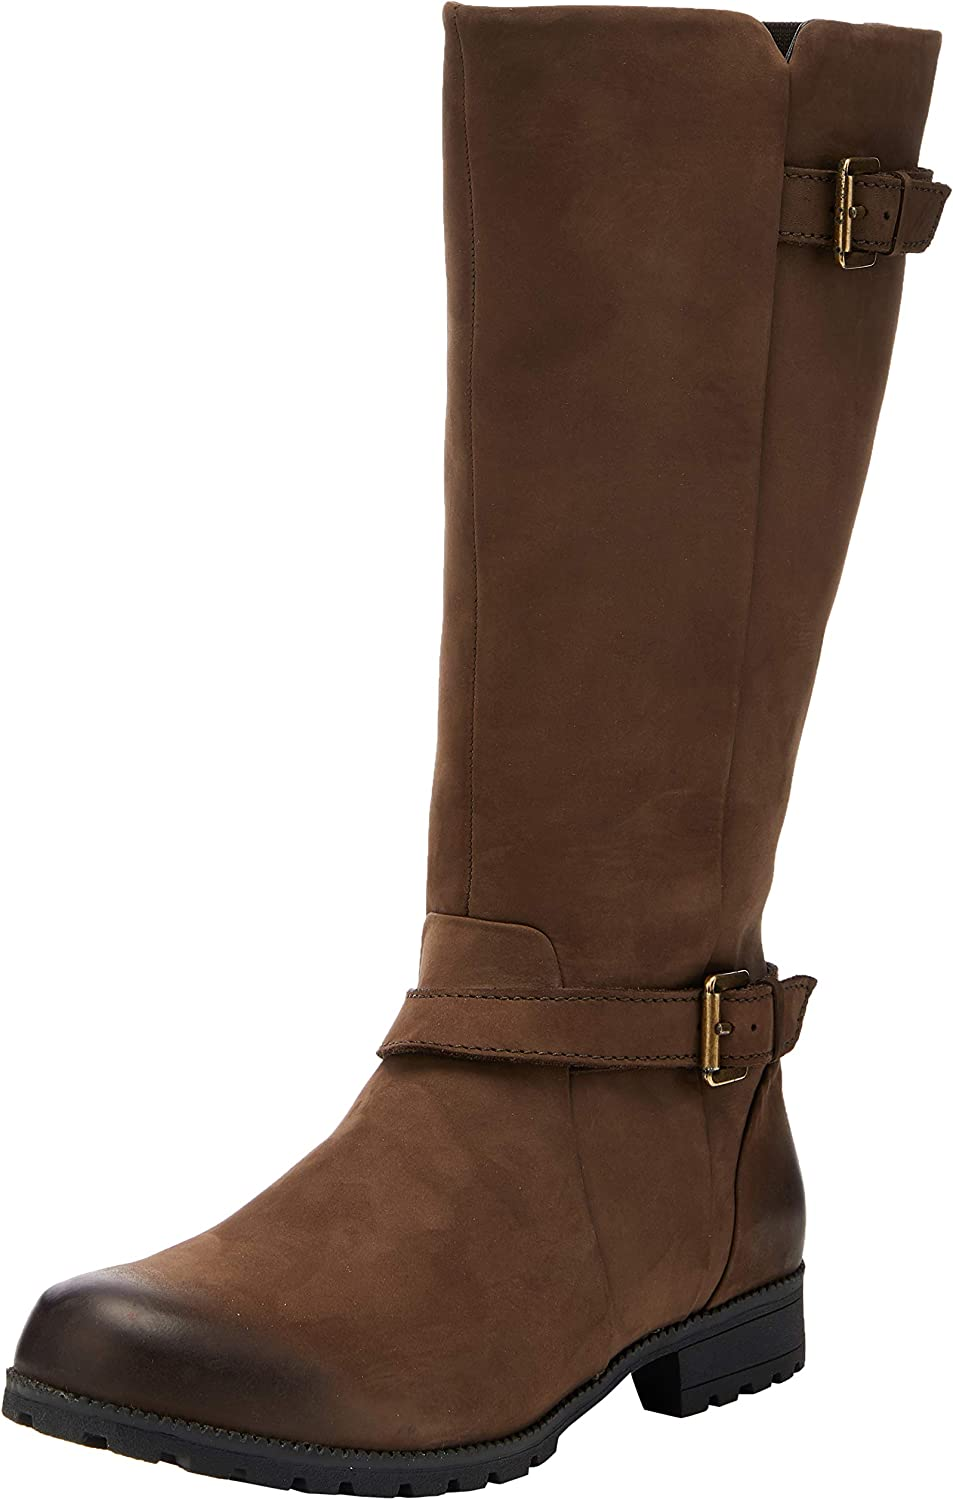 Hotter Dedication Attention brand Women's Classic High Knee Boot